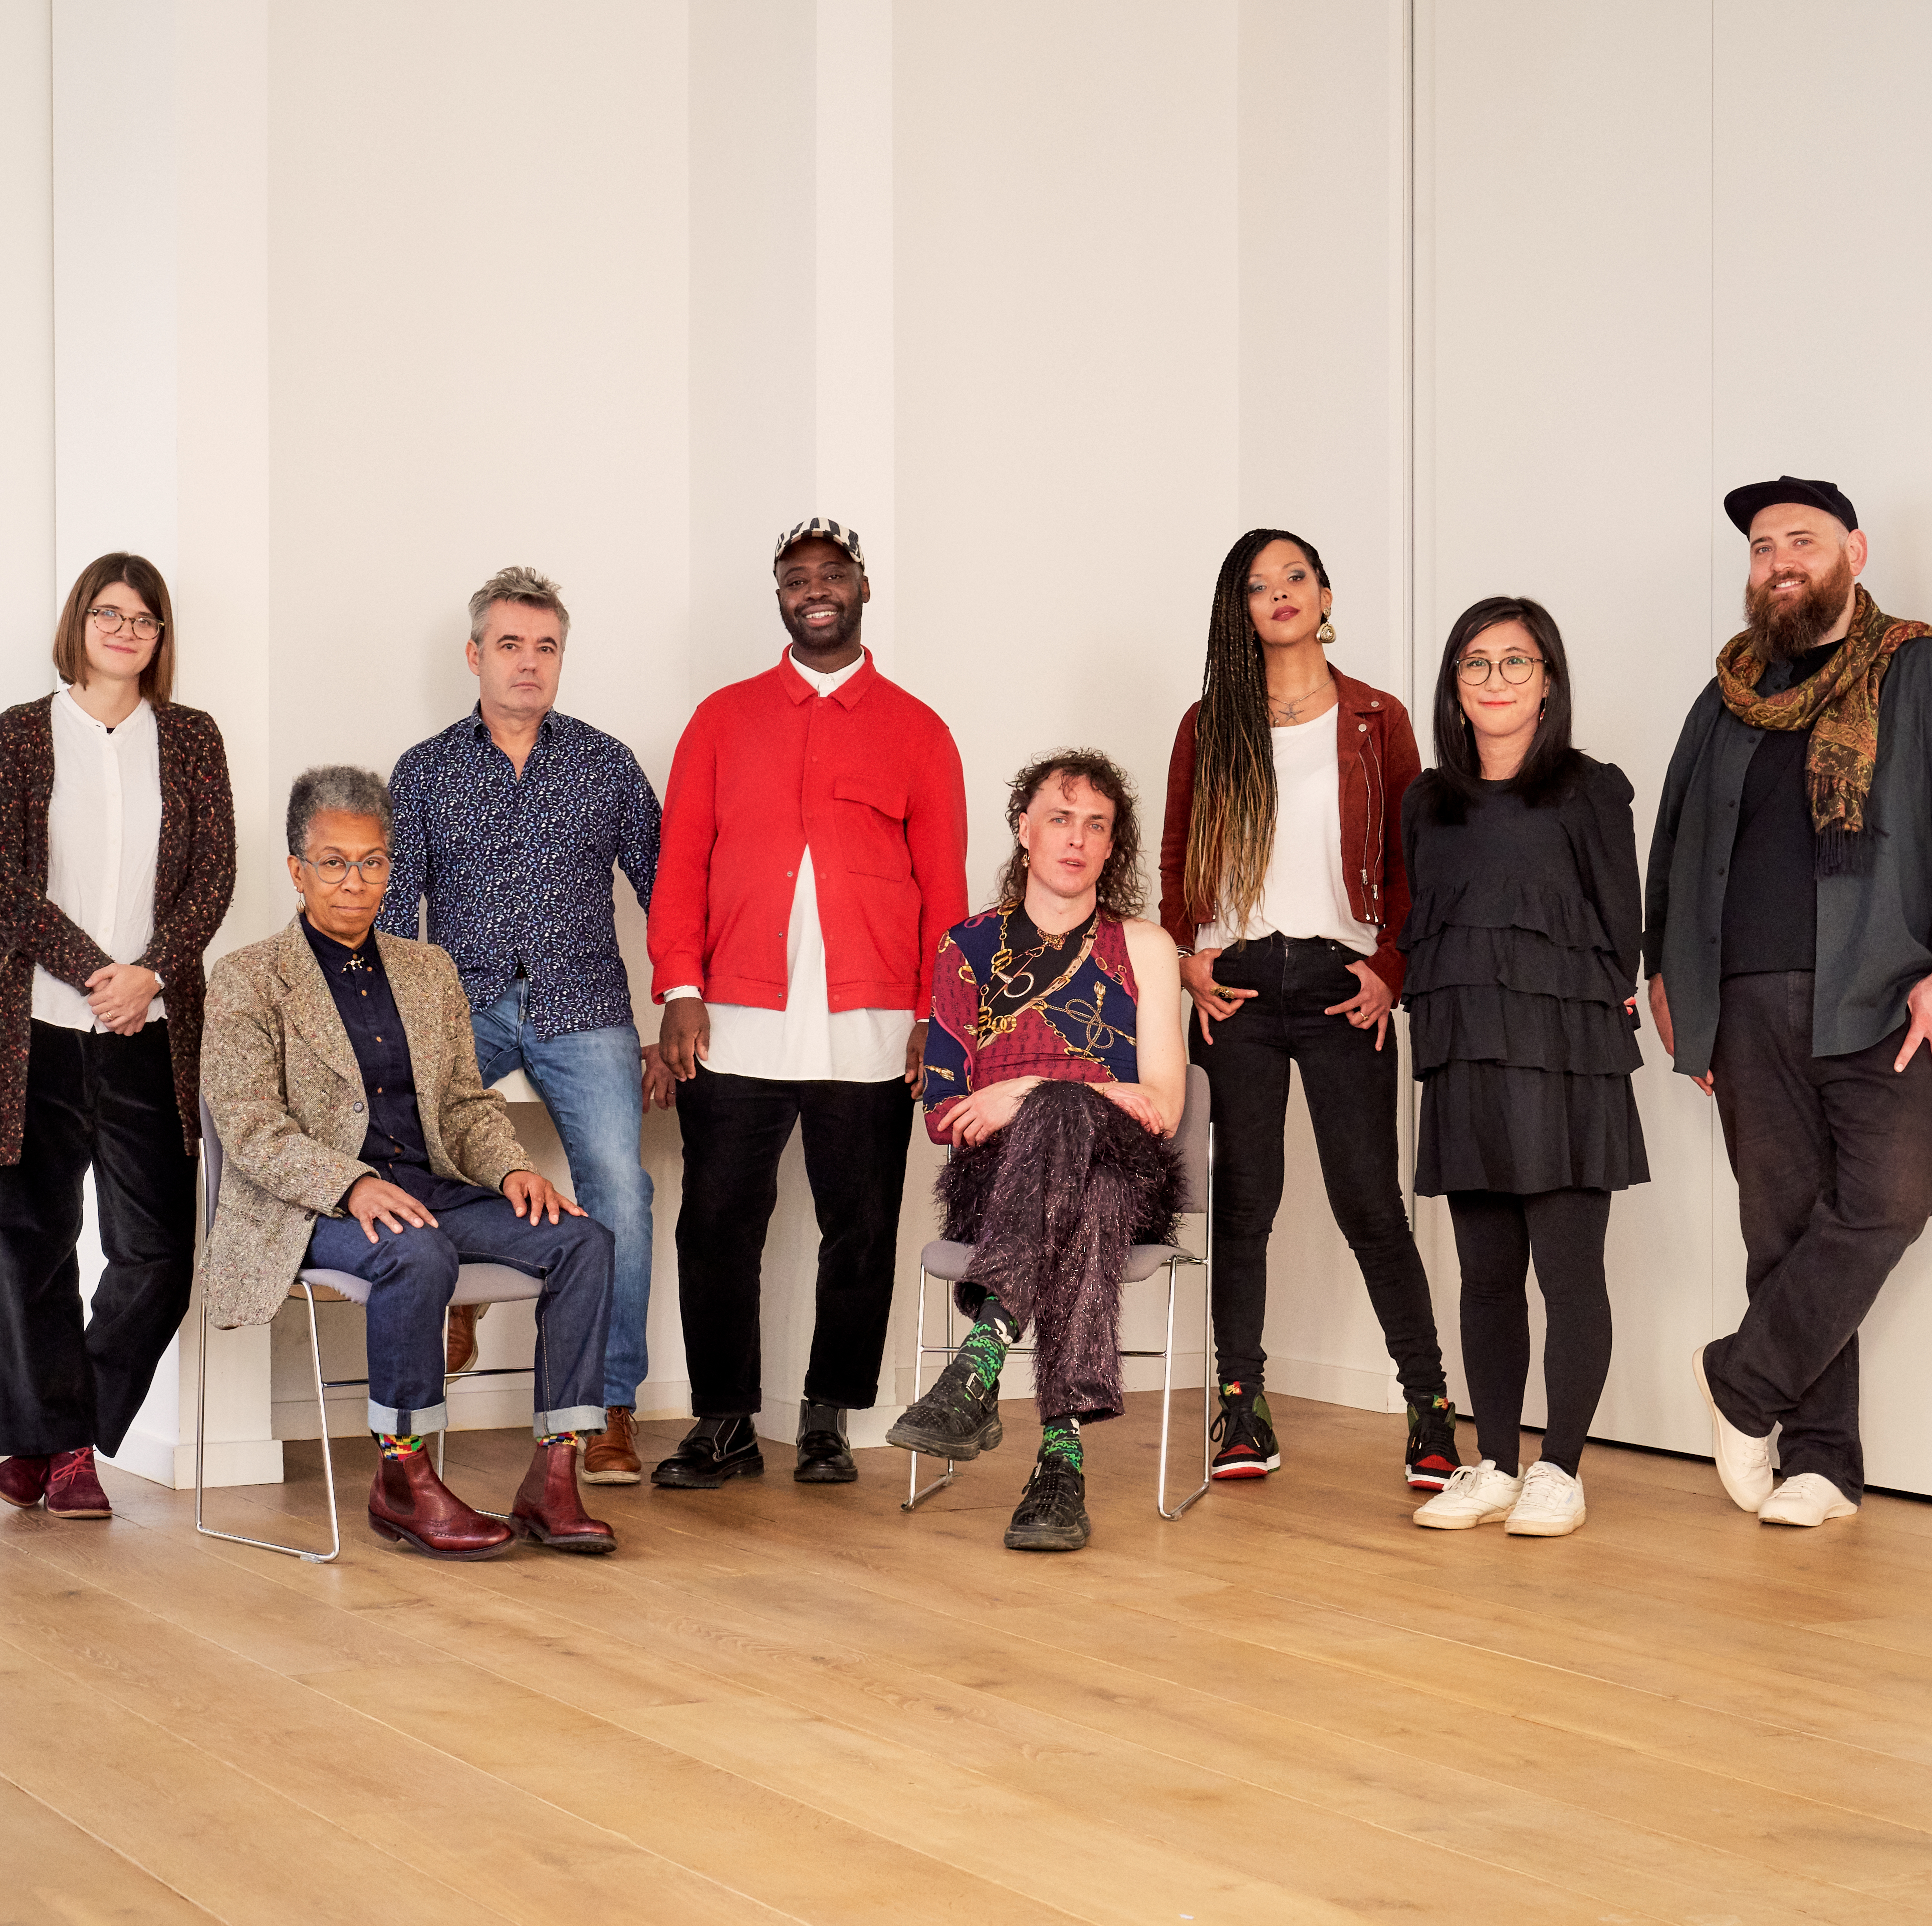 The 2019 Awards for Artists recipients. Photo: Emile Holba. Courtesy of the Paul Hamlyn Foundation.